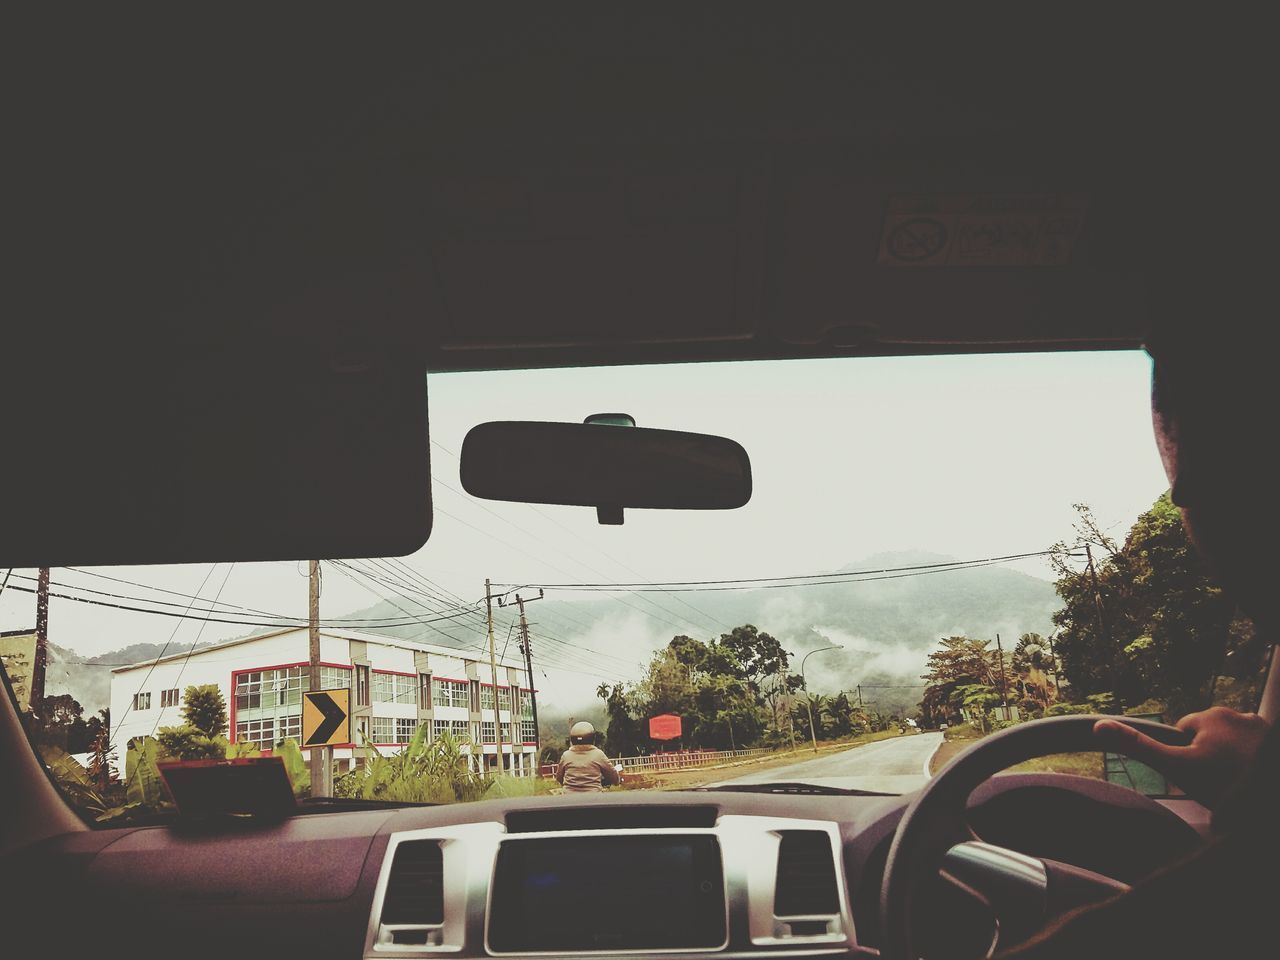 car, transportation, mode of transport, land vehicle, vehicle interior, car interior, windshield, driving, day, journey, road trip, real people, tree, travel, road, one person, steering wheel, car point of view, sky, men, human hand, outdoors, nature, people